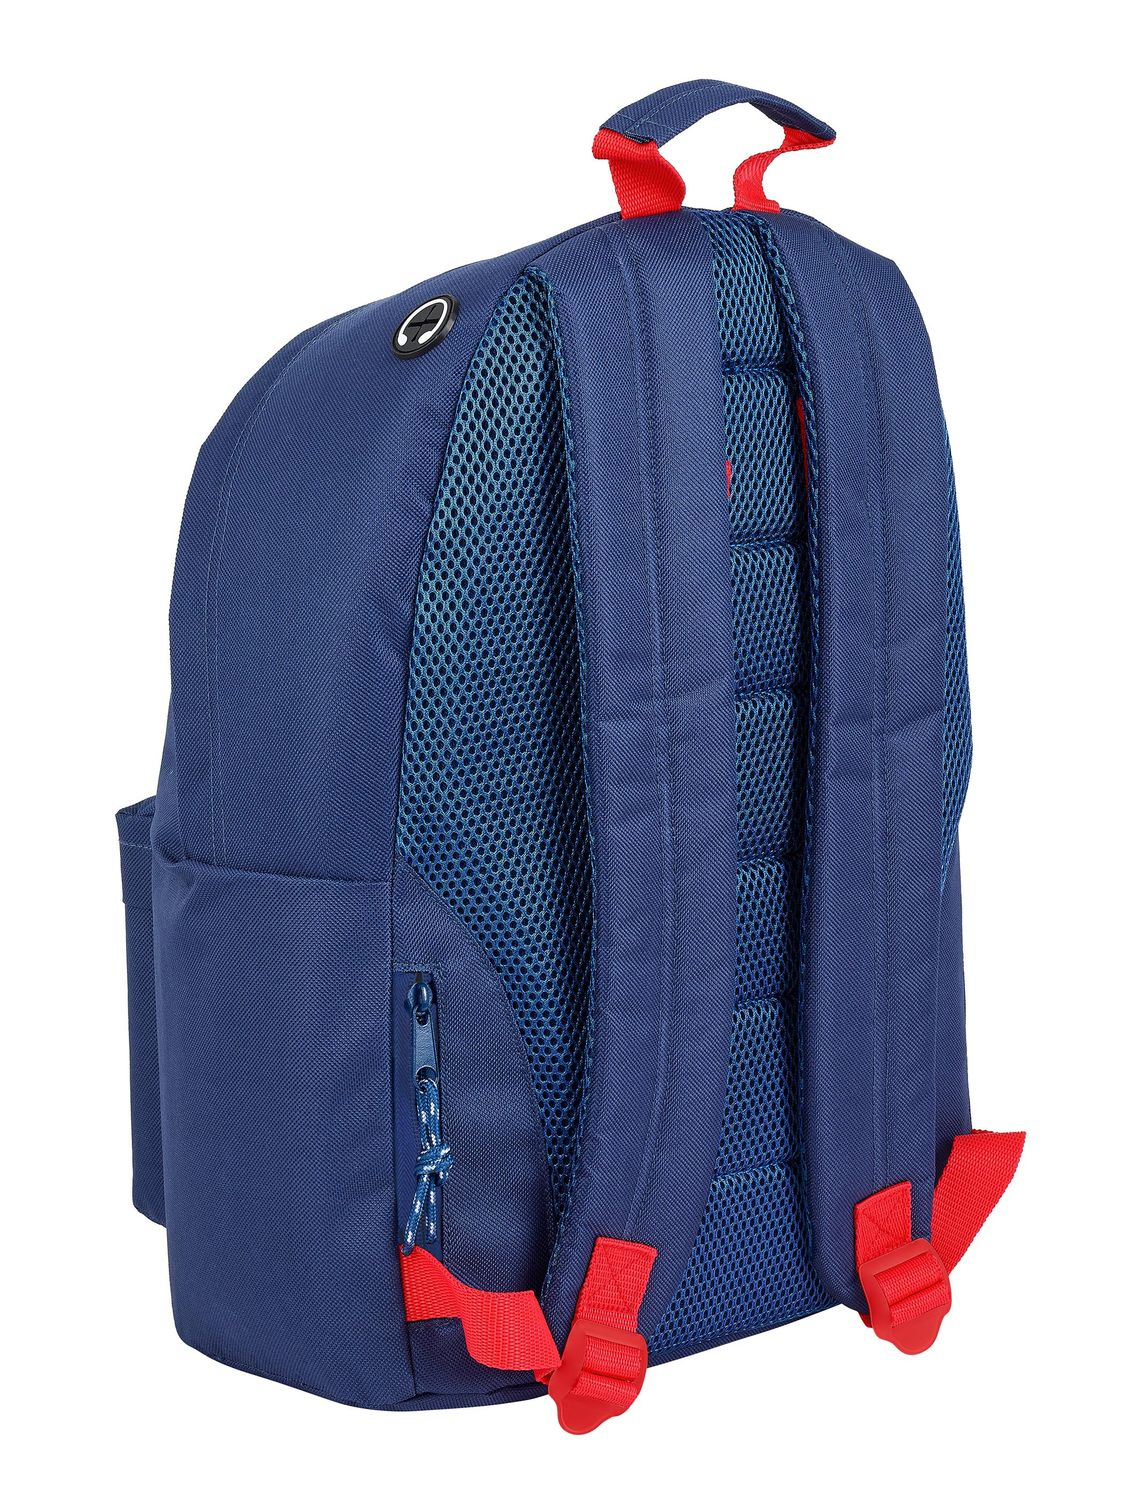 "BENETTON MIDNIGHT Laptop Backpack 14,1"" 41 cm – image 3"